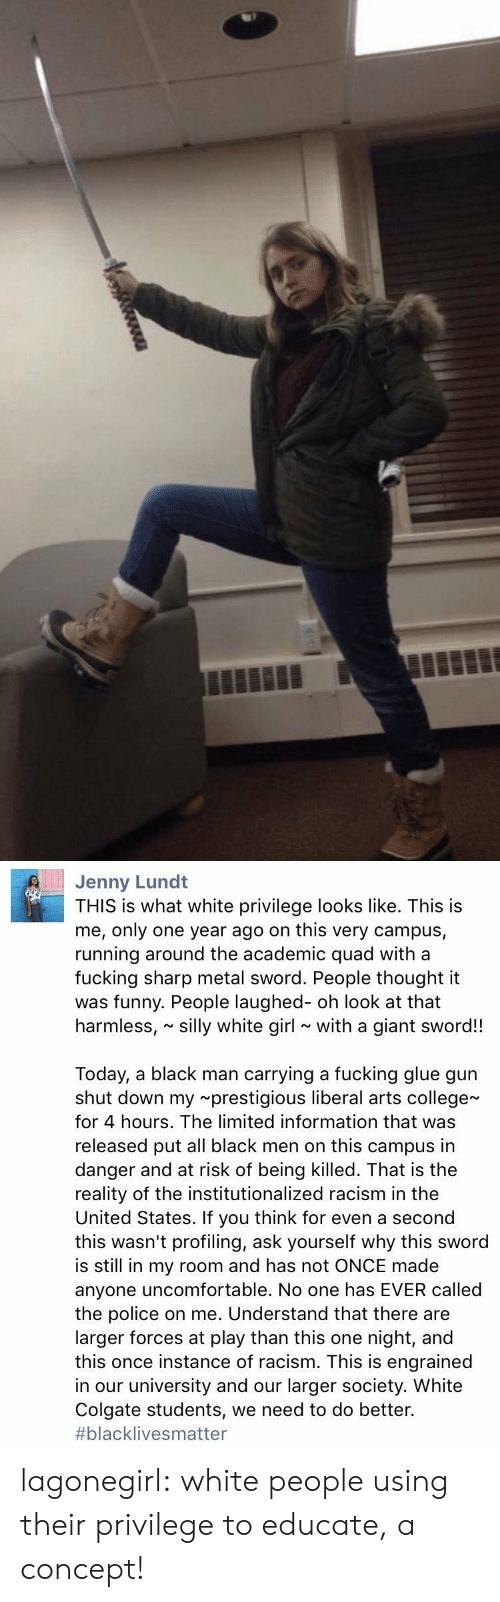 white girl: Jenny Lund  THIS is what white privilege looks like. This is  me, only one year ago on this very campus,  running around the academic quad with a  fucking sharp metal sword. People thought it  was funny. People laughed- oh look at that  harmless, silly white girl with a giant sword!!  Today, a black man carrying a fucking glue gun  shut down my prestigious liberal arts college  for 4 hours. The limited information that was  released put all black men on this campus in  danger and at risk of being killed. That is the  reality of the institutionalized racism in the  United States. If you think for even a second  this wasn't profiling, ask yourself why this sword  is still in my room and has not ONCE made  anyone uncomfortable. No one has EVER called  the police on me. Understand that there are  larger forces at play than this one night, and  this once instance of racism. This is engrained  in our university and our larger society. White  Colgate students, we need to do better.  #blackIive s matter lagonegirl:   white people using their privilege to educate, a concept!